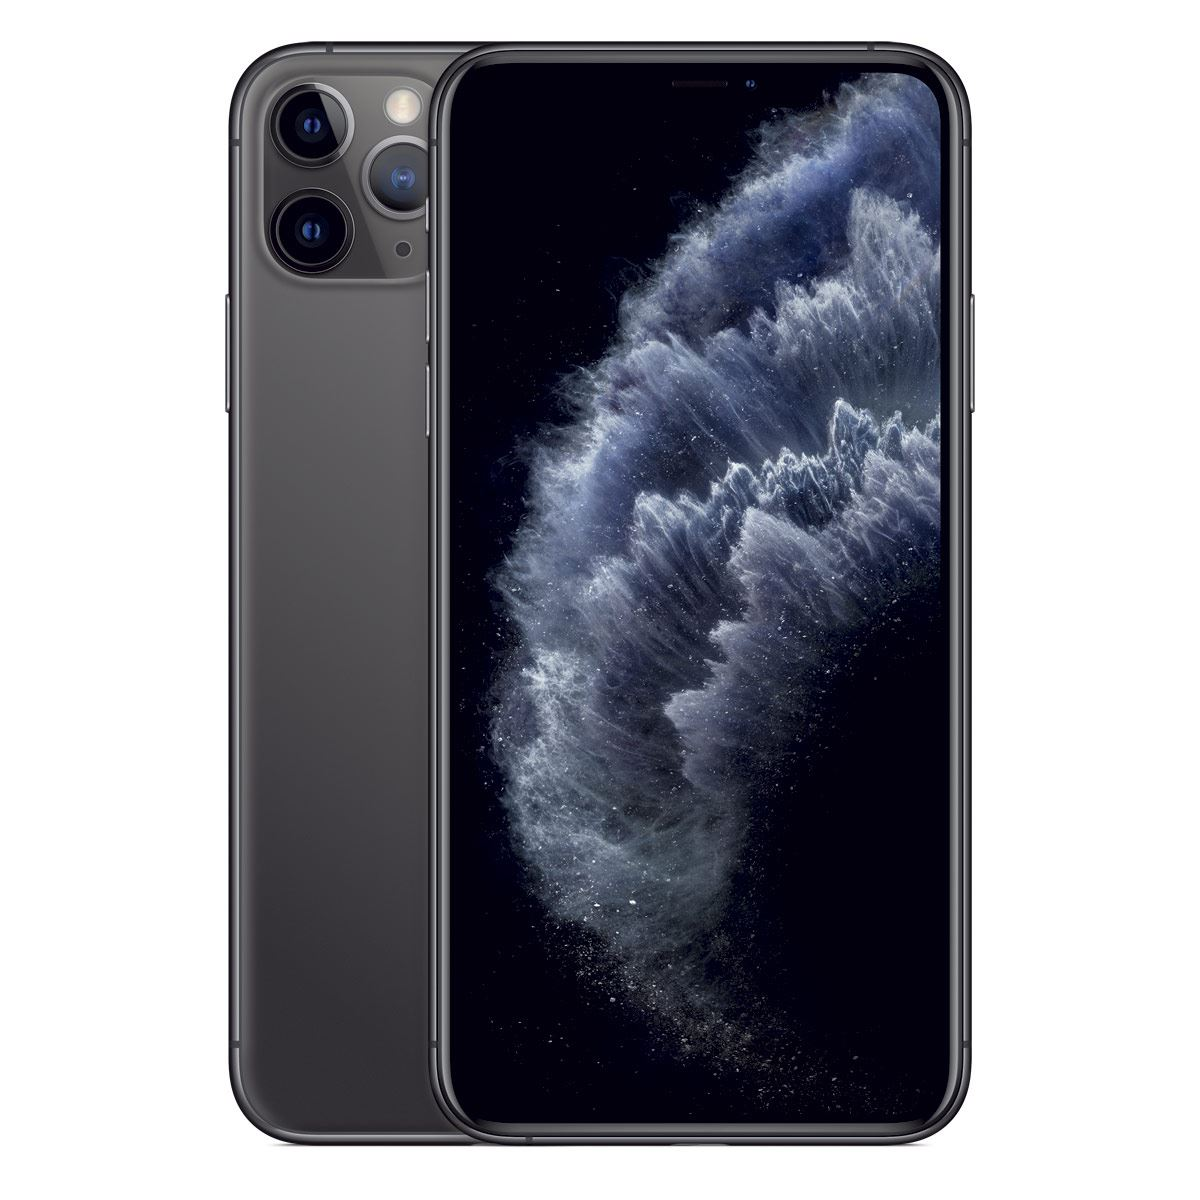 iPhone 11 Pro Max 512GB Color Gris R9 (Telcel)